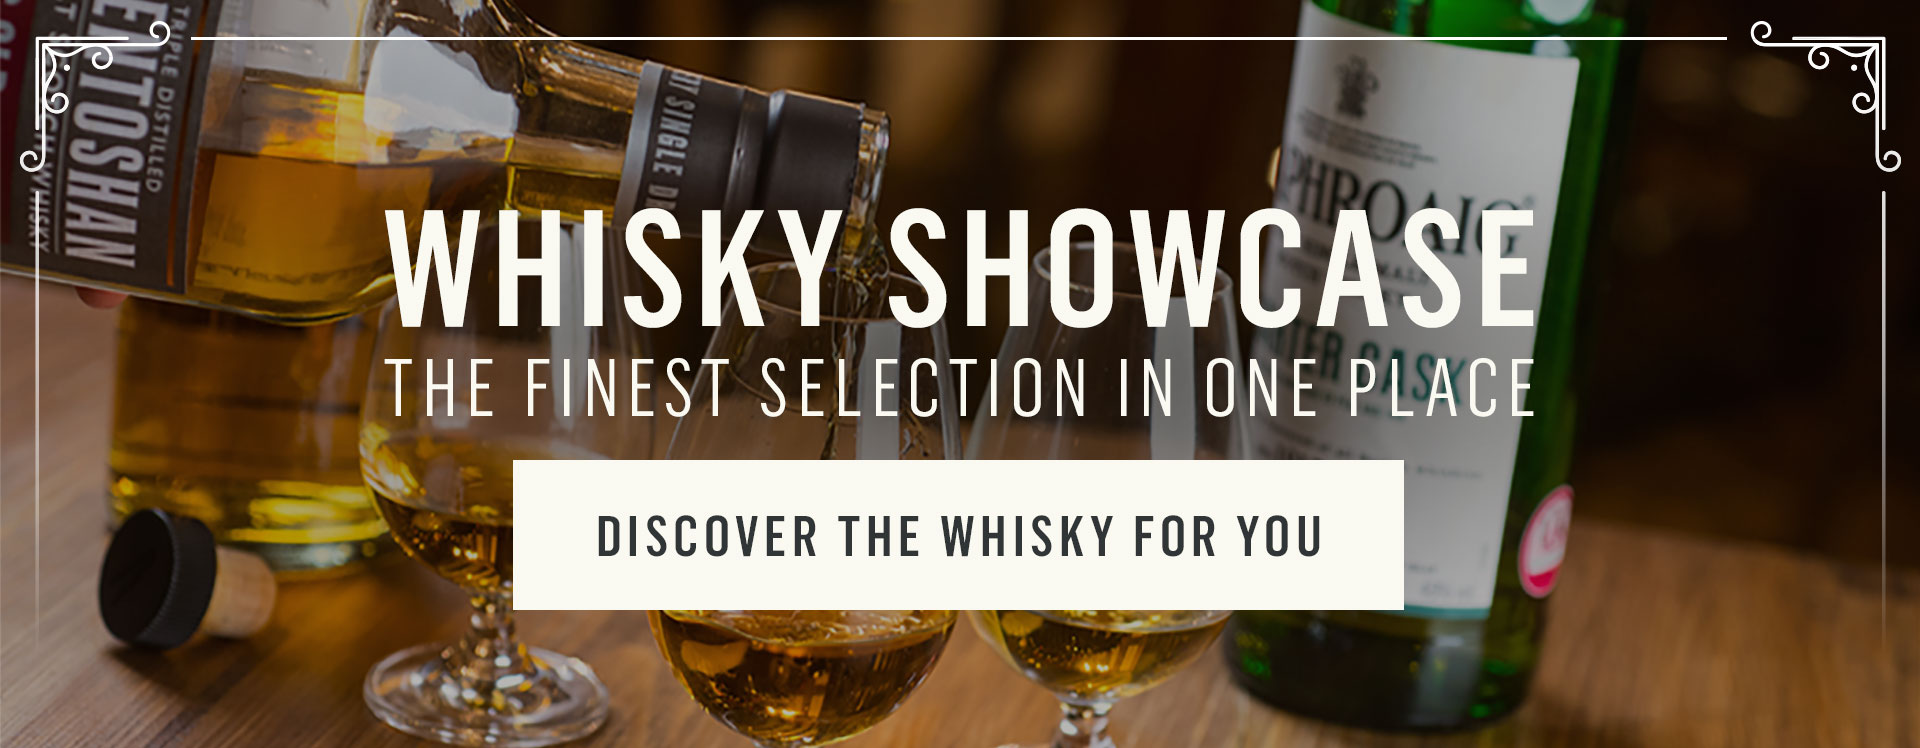 Whisky Showcase at The Philharmonic Dining Rooms in Liverpool